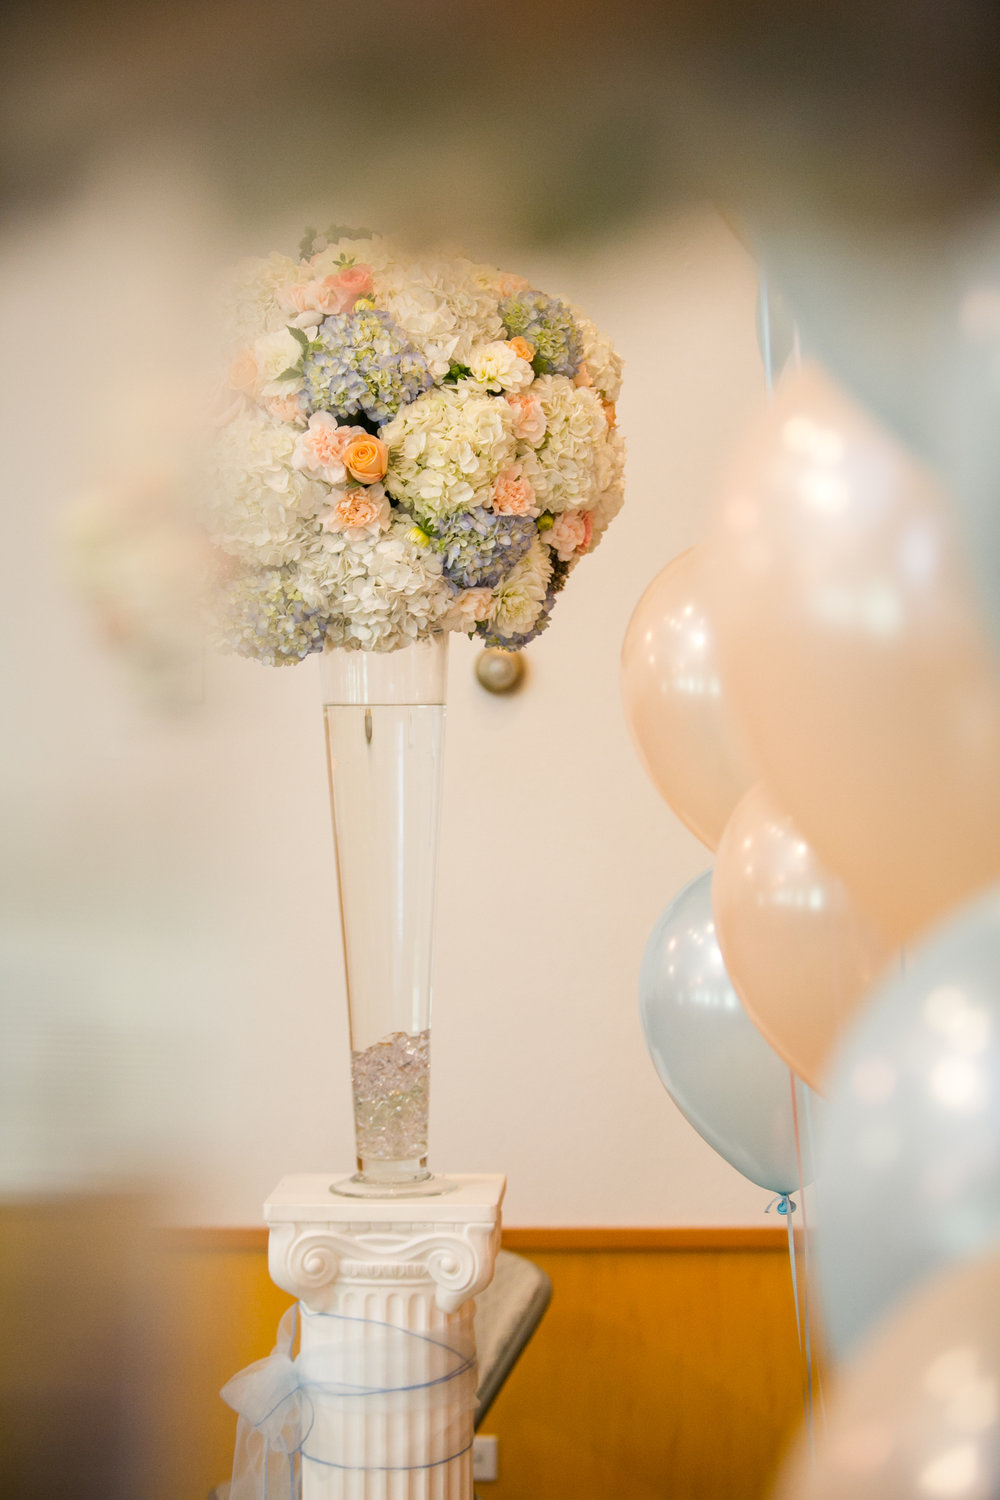 Balloons and large boquet of flowers for wedding decoration